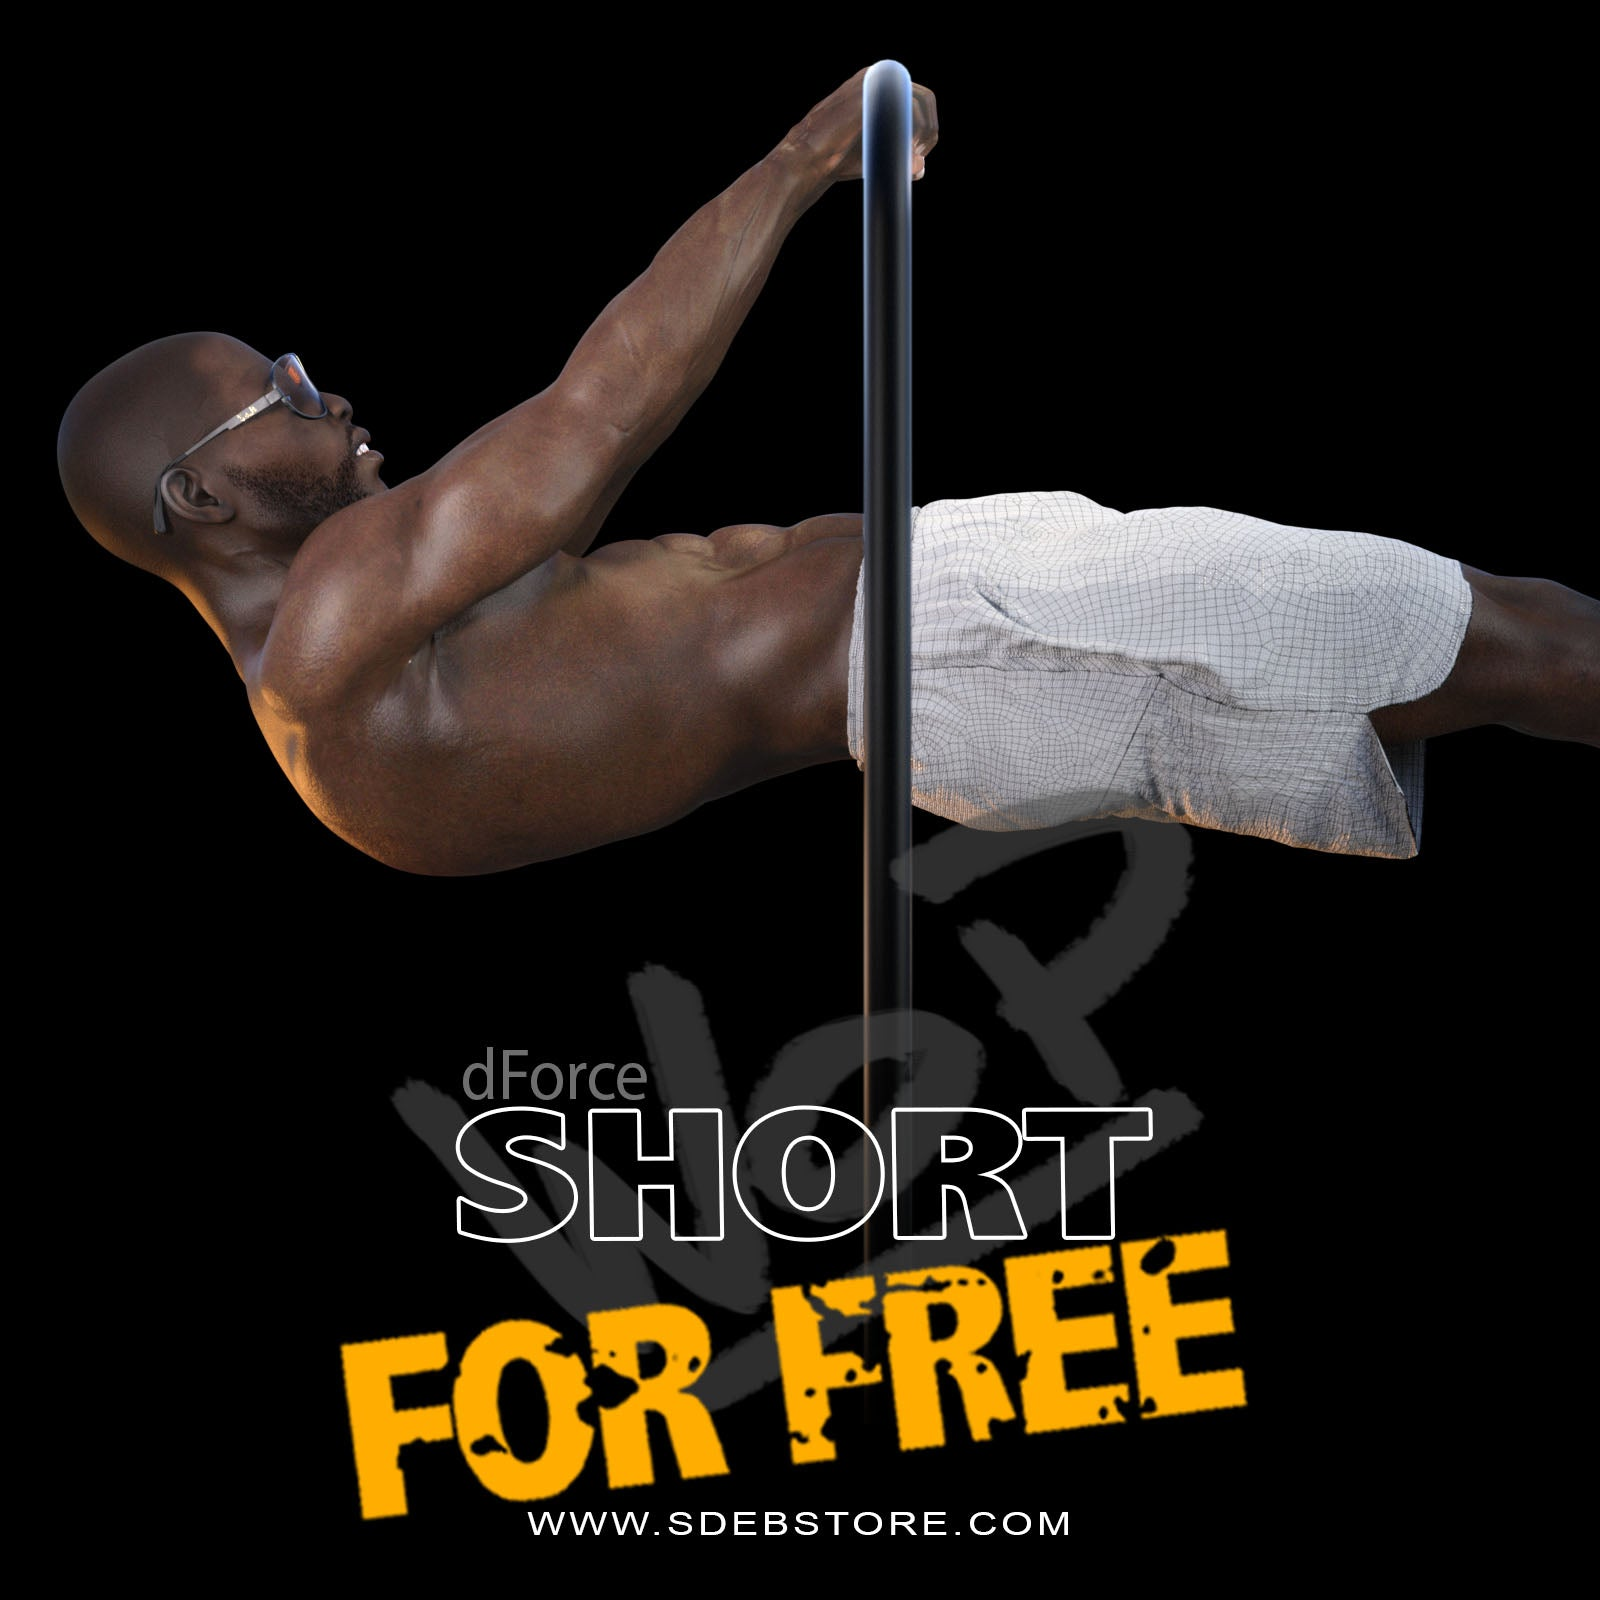 WorkOut Short G8M - FREE - www.SdeBStore.com